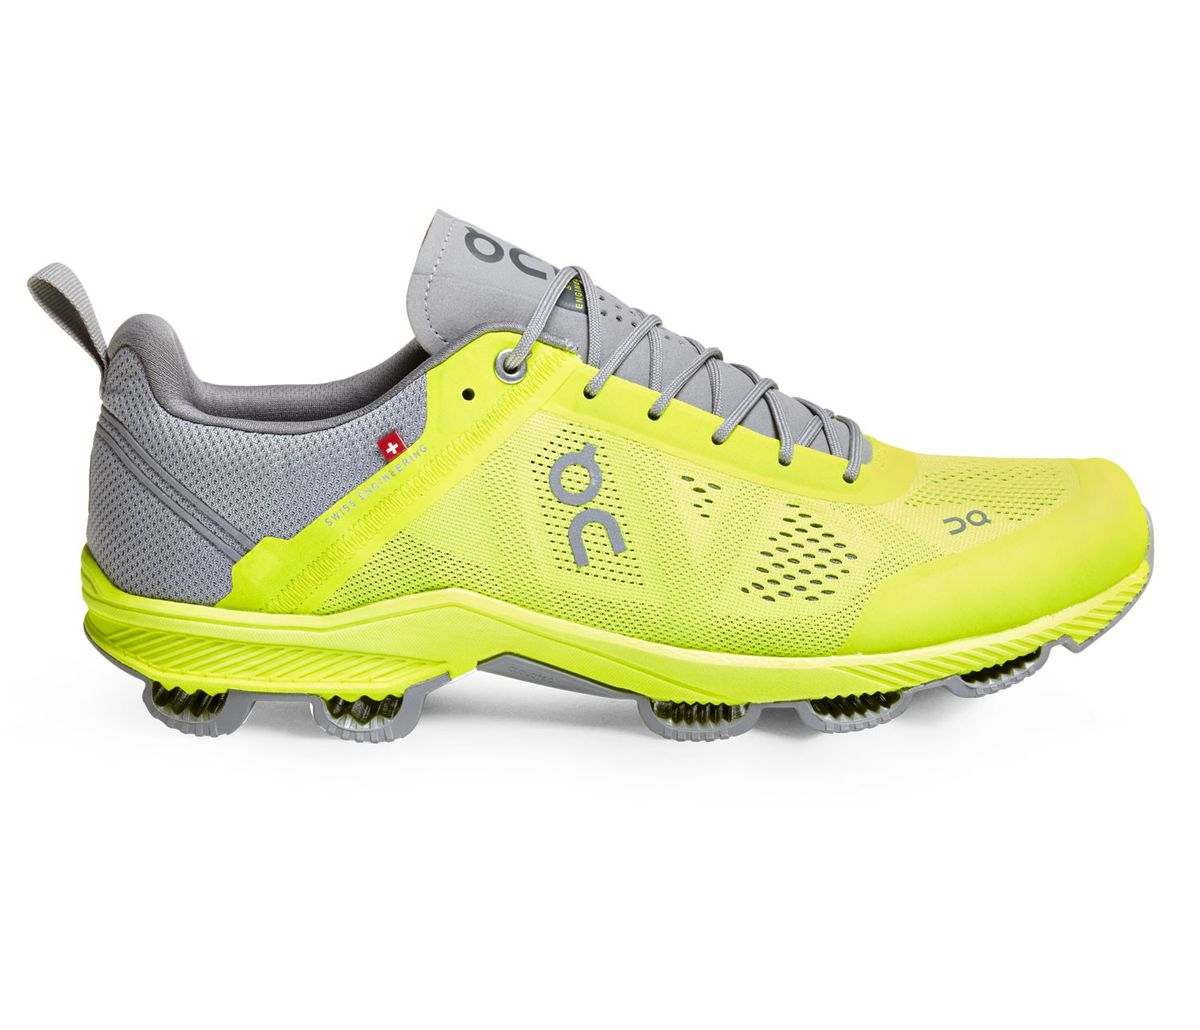 Run on Clouds Mens CloudSurfer Running Shoes - Neon & Grey. Loading zoom